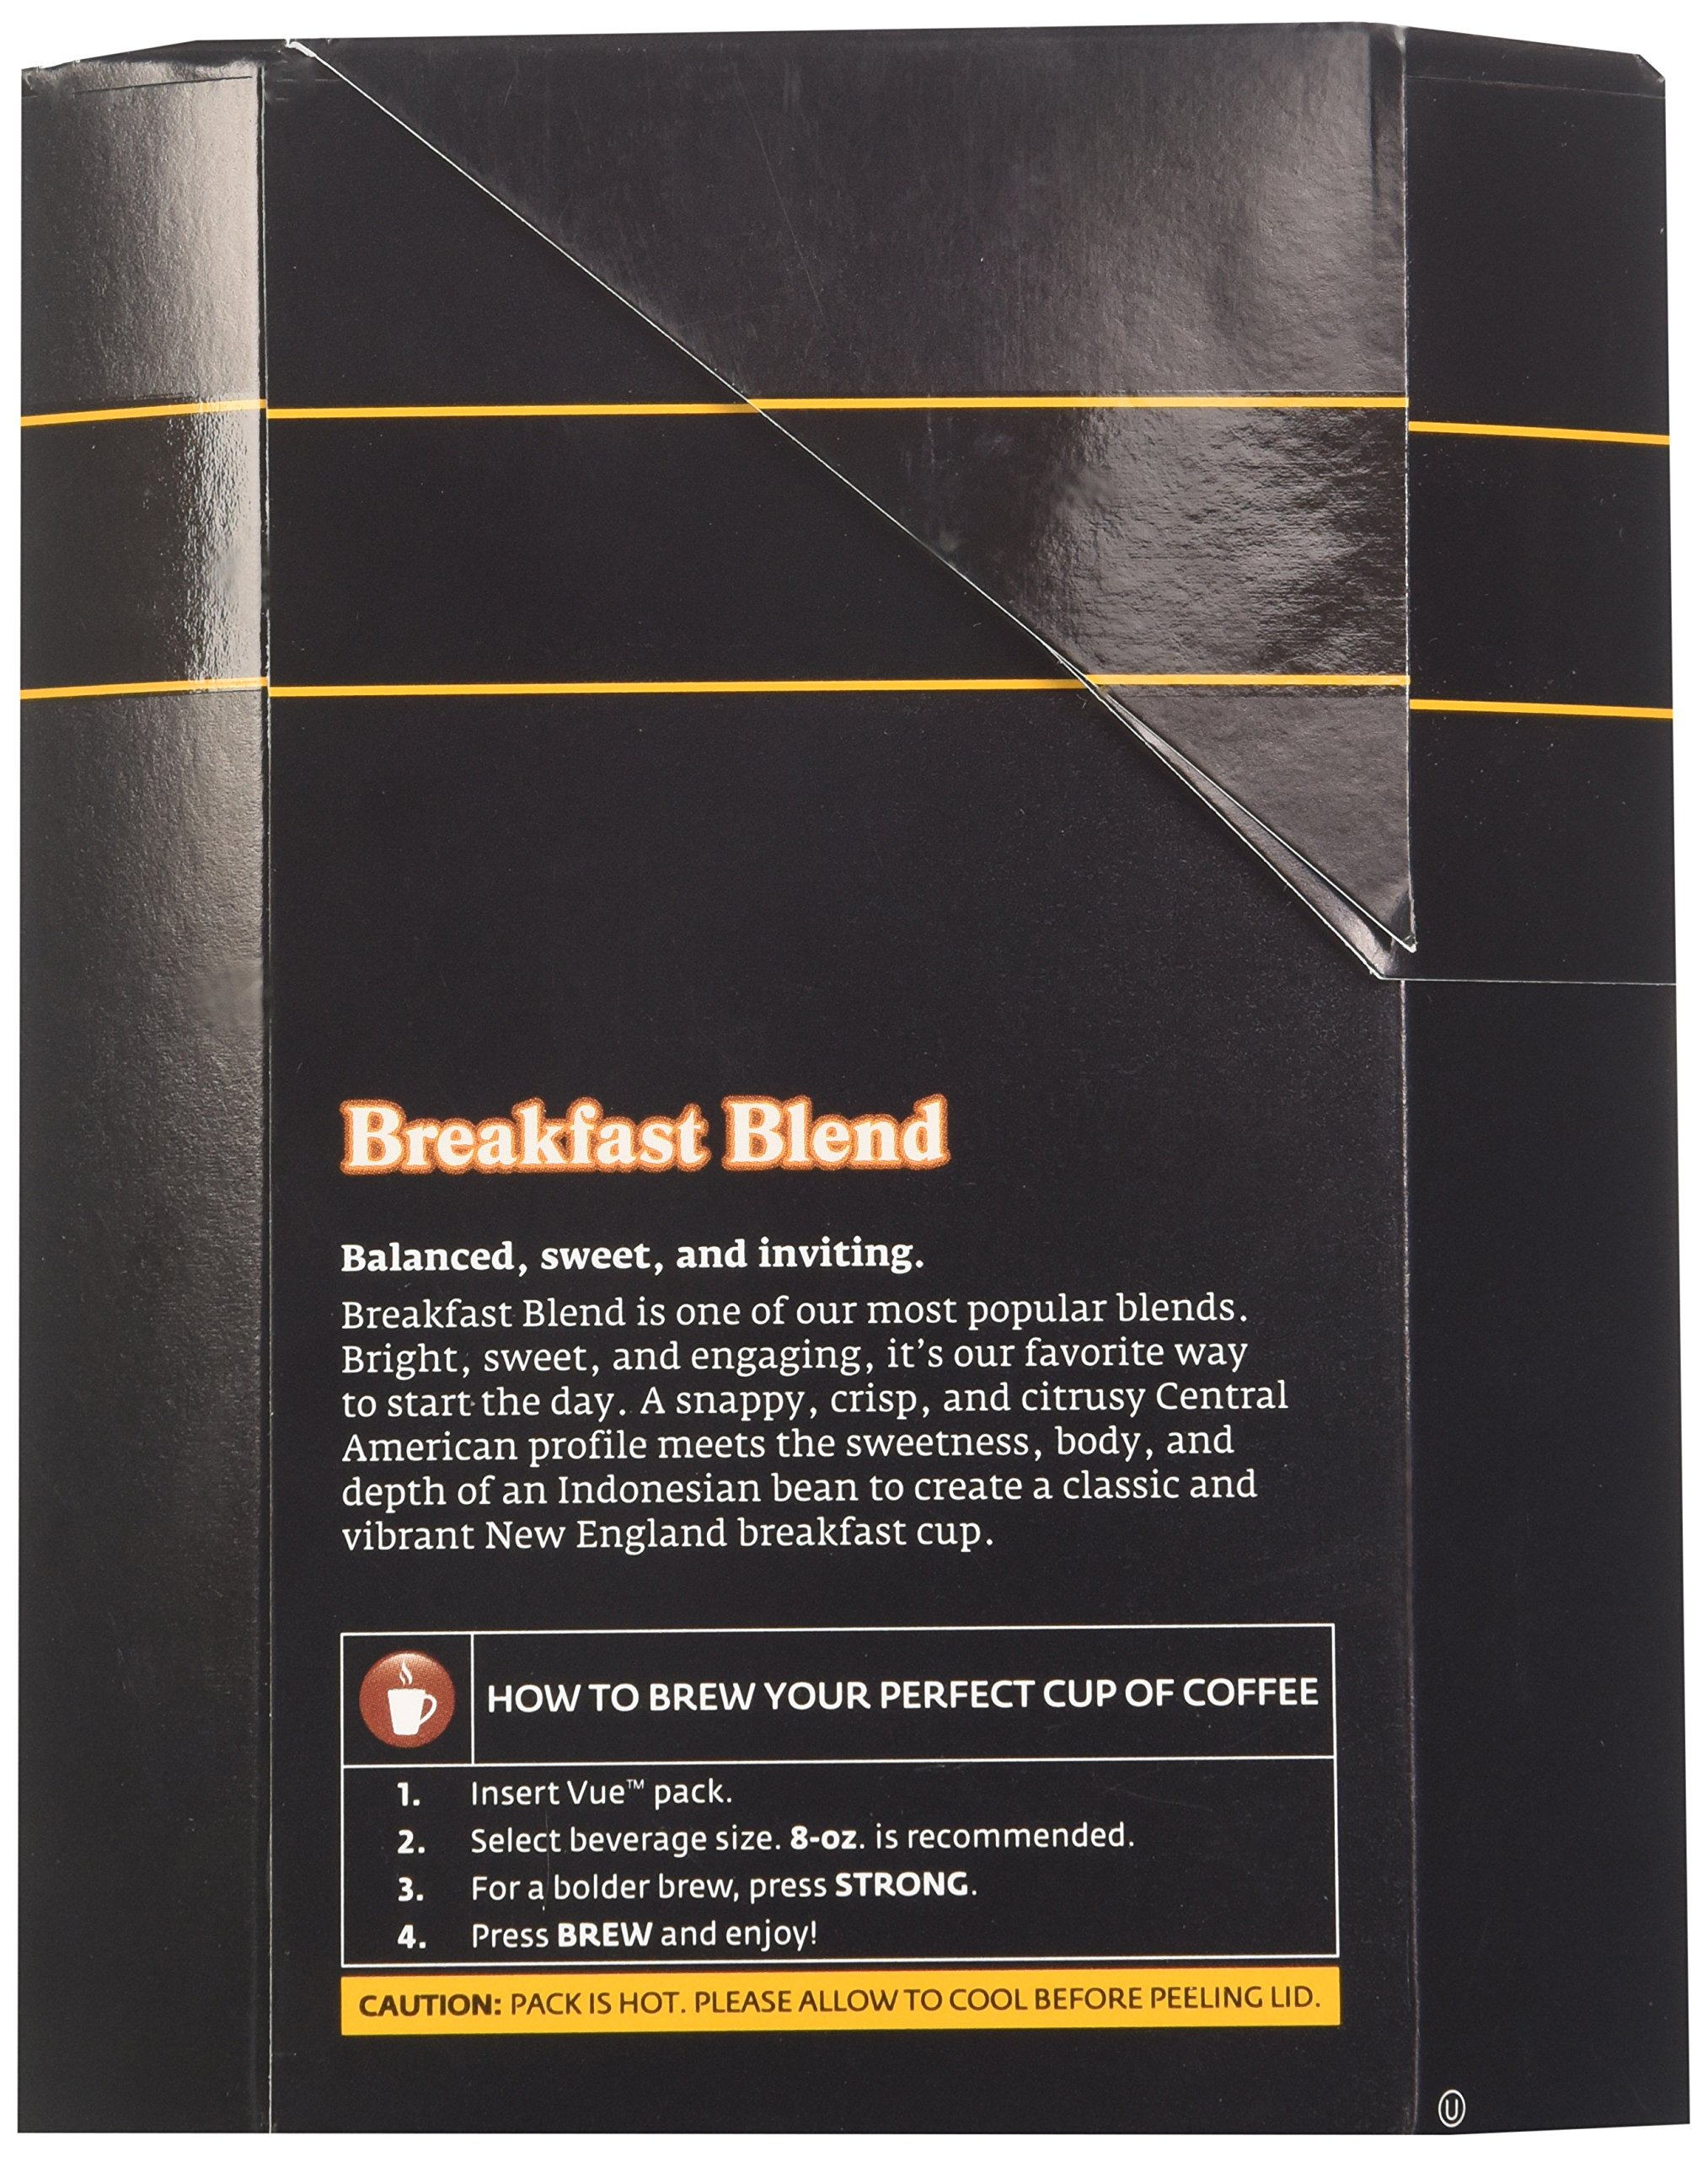 Green Mountain Coffee Breakfast Blend, Vue Cup Portion Pack for Keurig Vue Brewing Systems, 16 Count by Green Mountain Coffee Roasters (Image #7)